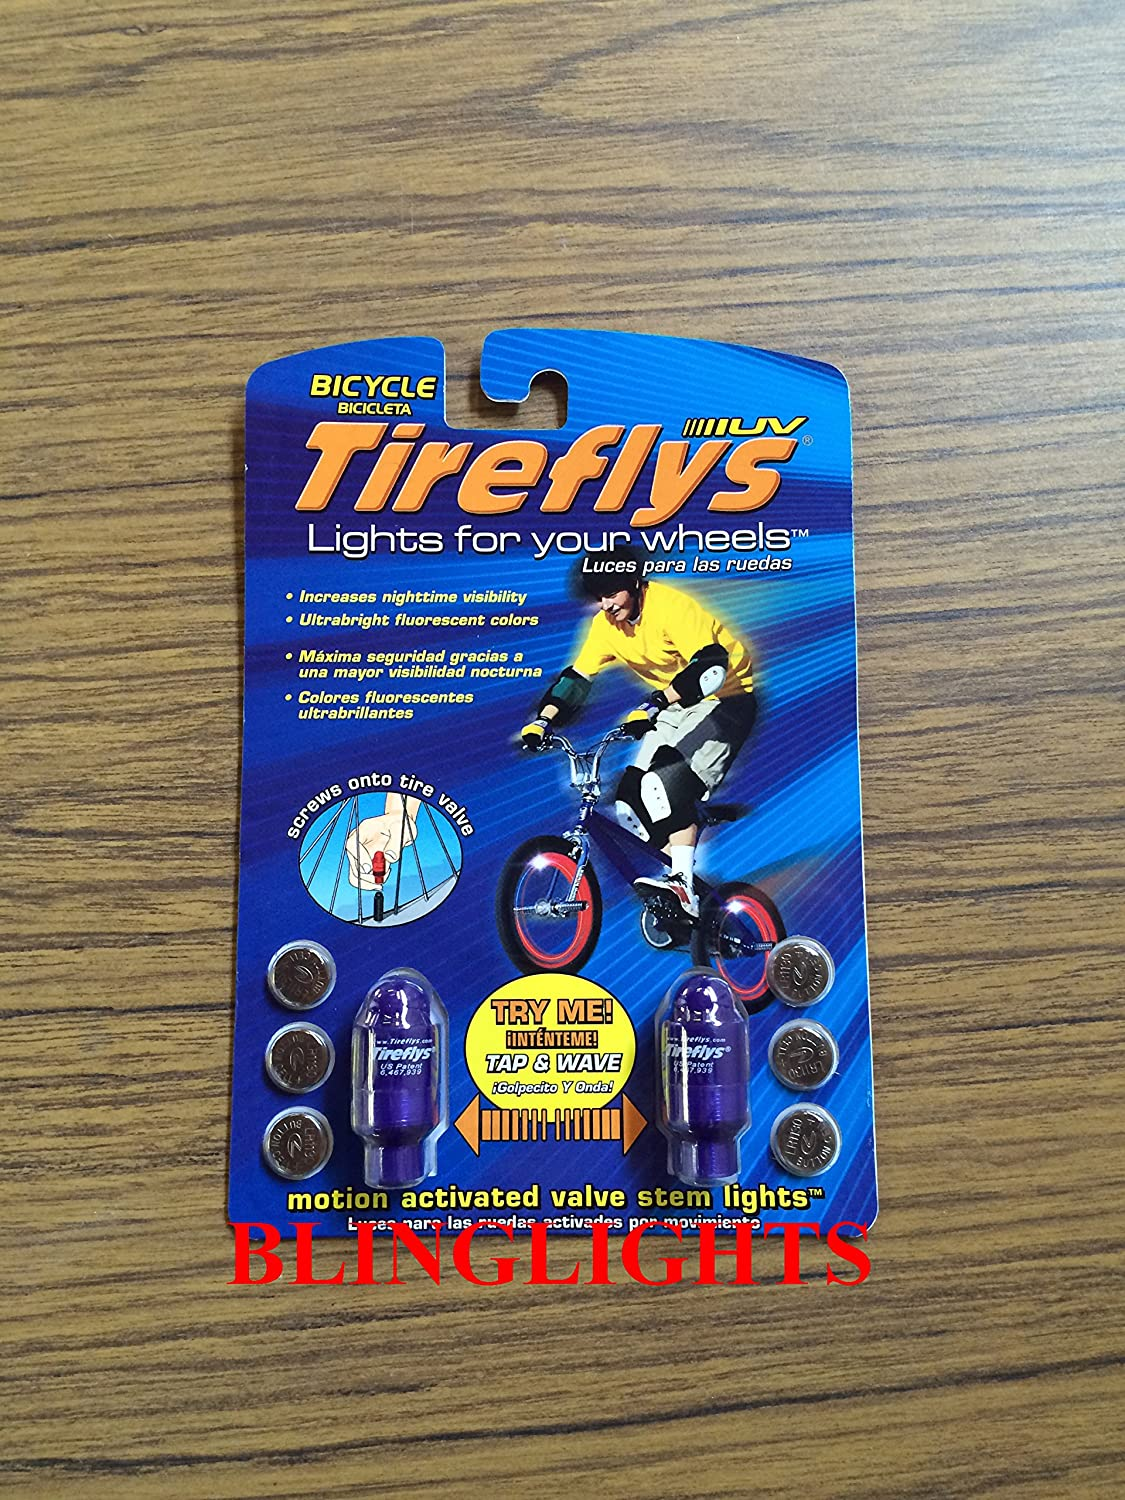 Amazon.com: Blue LED Tireflys Motion Activated Bicycle Valve Wheel Bike Stem Lights Batteries Included: Automotive